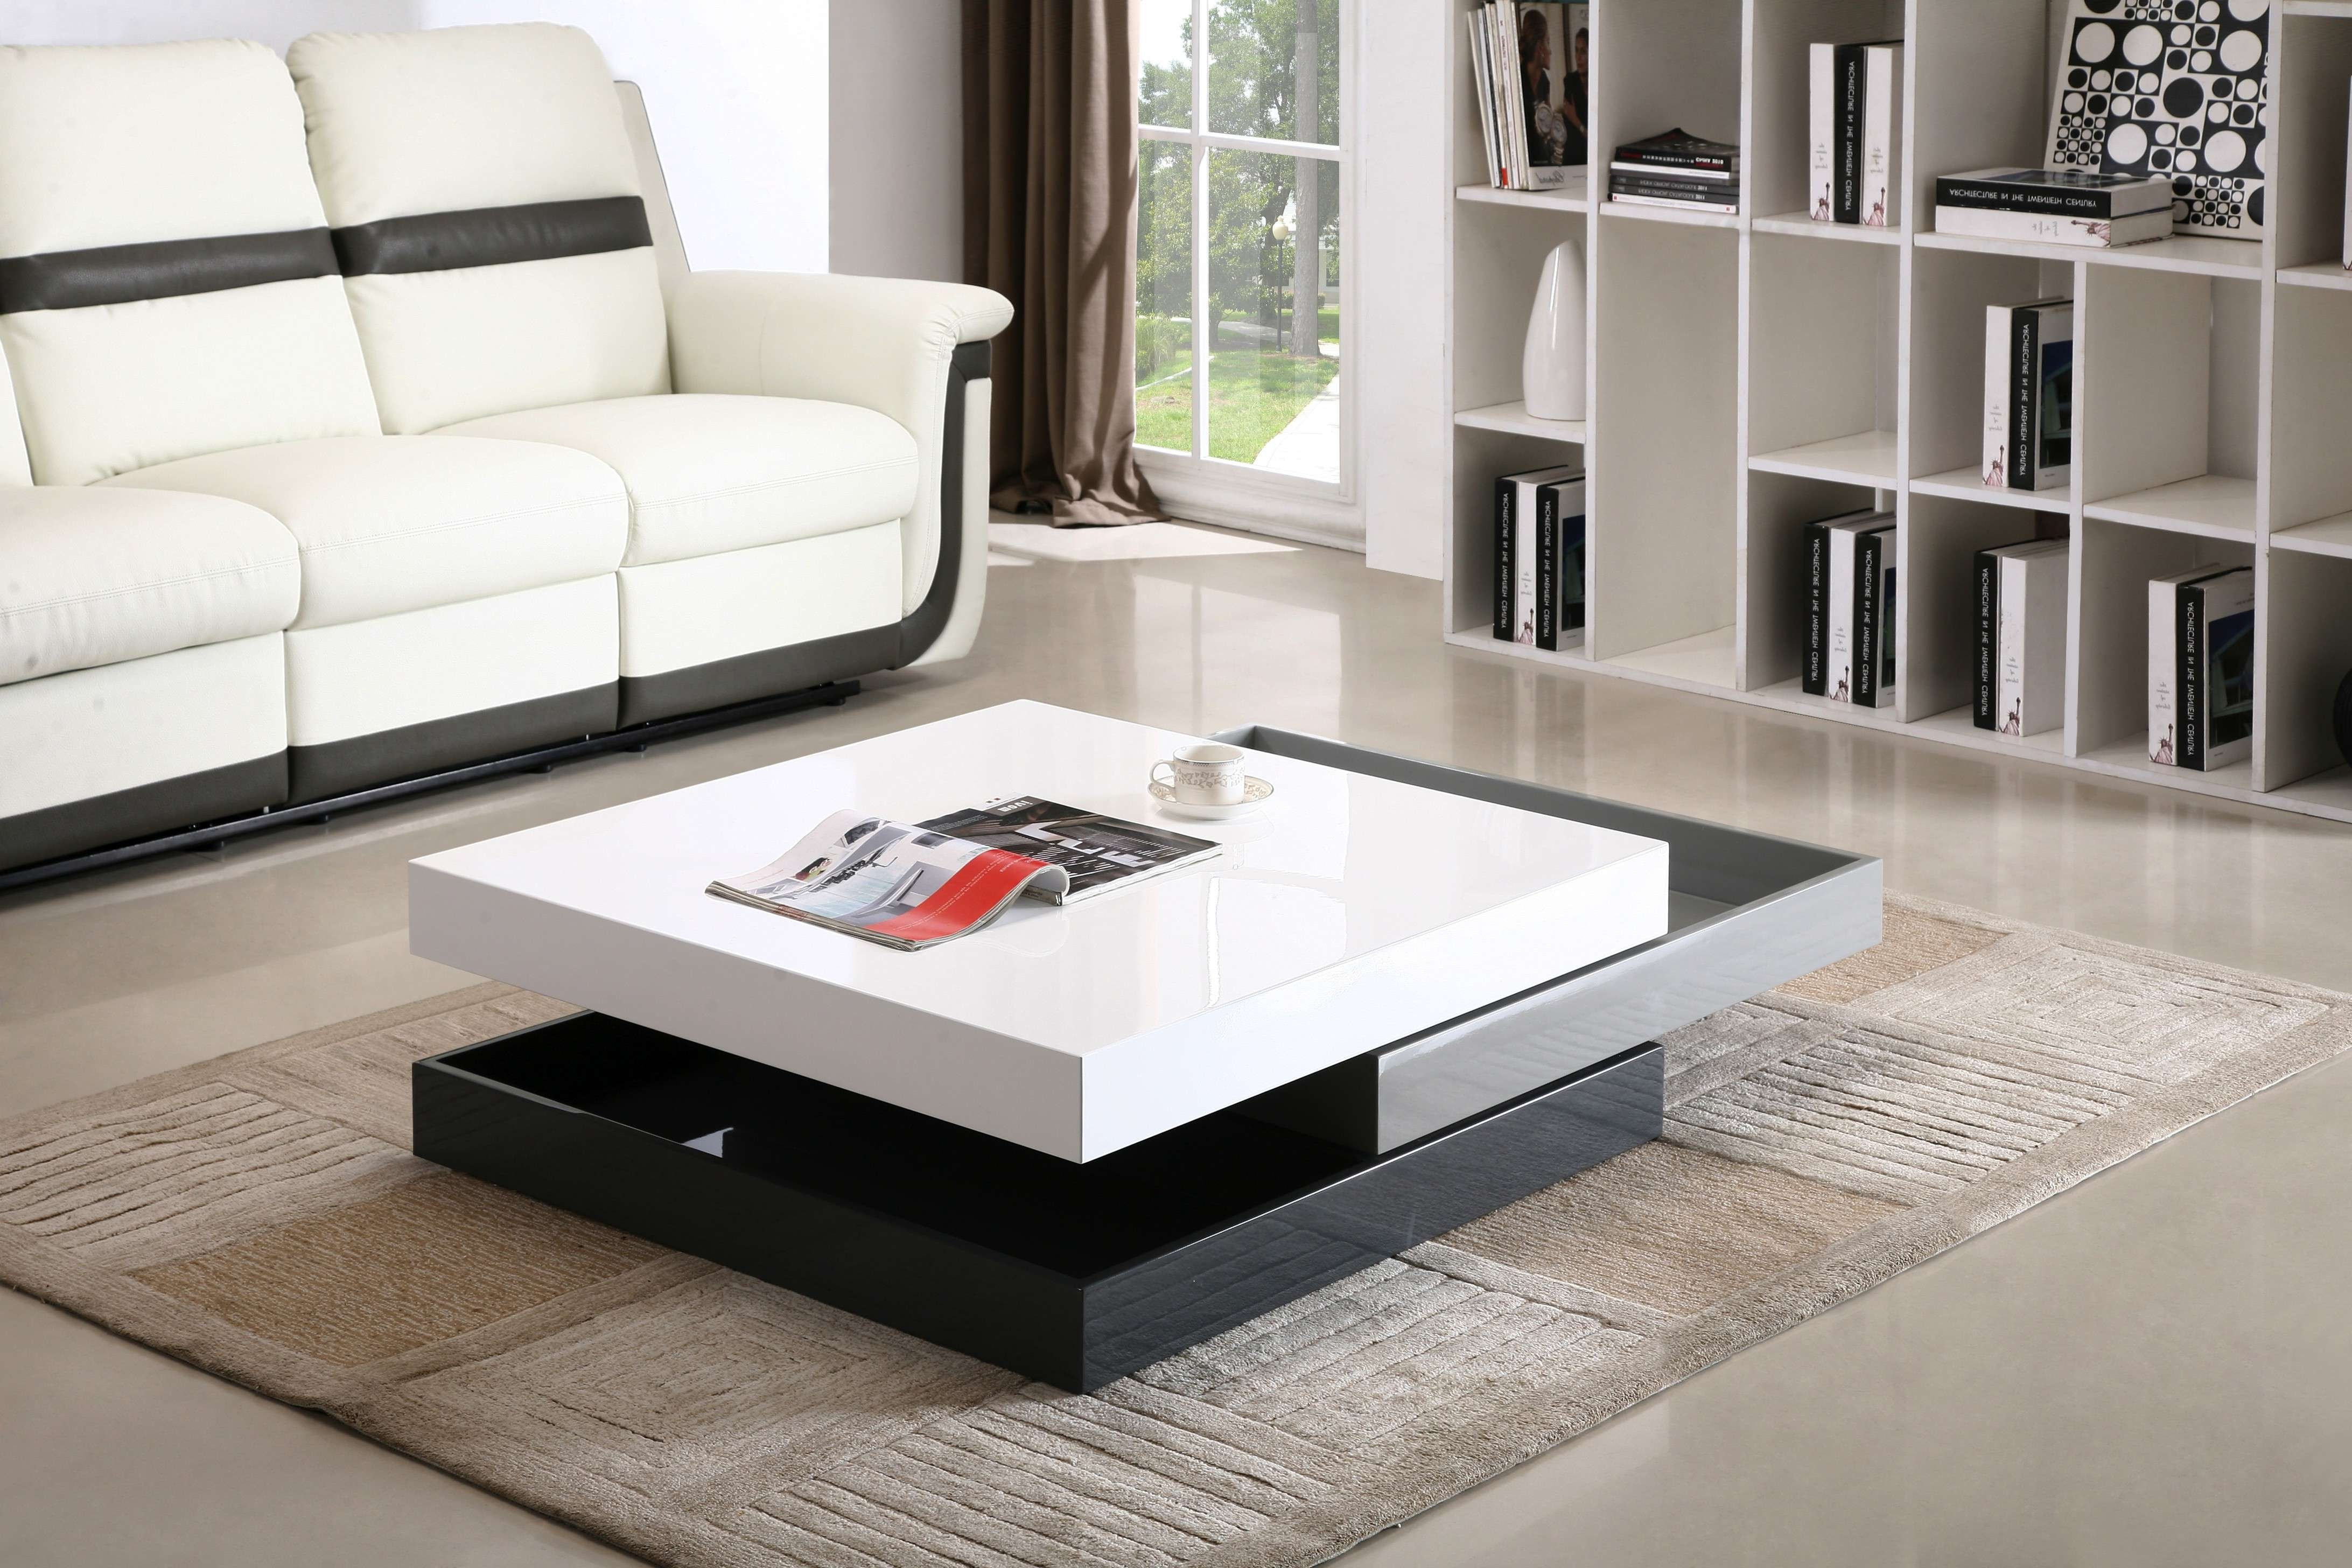 Contemporary Living Room Tables Fair Design Ideas Ef Coffee Table Intended For Current Contemporary Coffee Table (View 11 of 20)